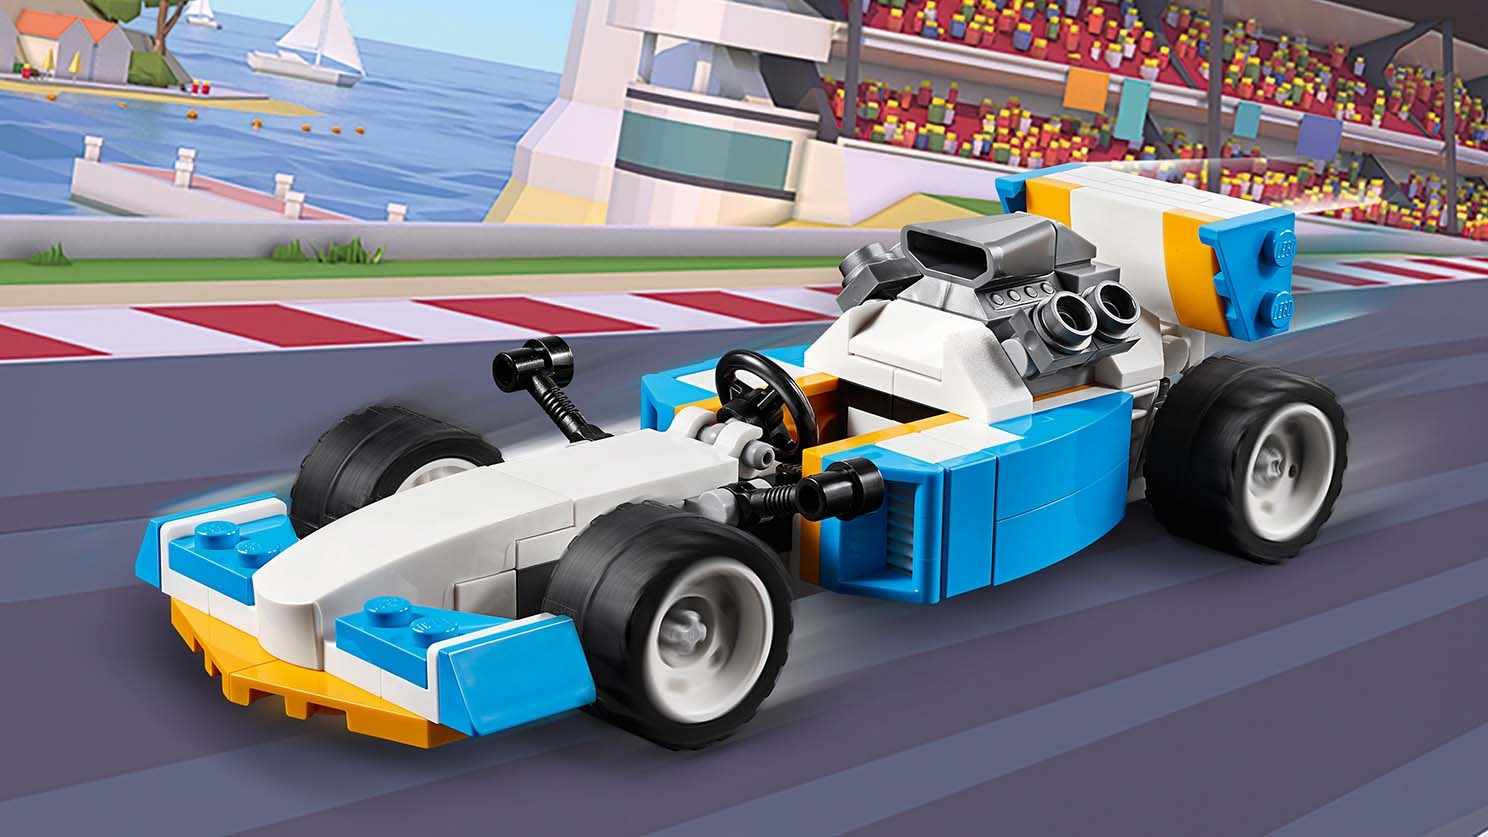 LEGO Creator 3 in 1 - 31072 Extreme Engines - A Race Car with a large rear engine is portrayed on a race track.